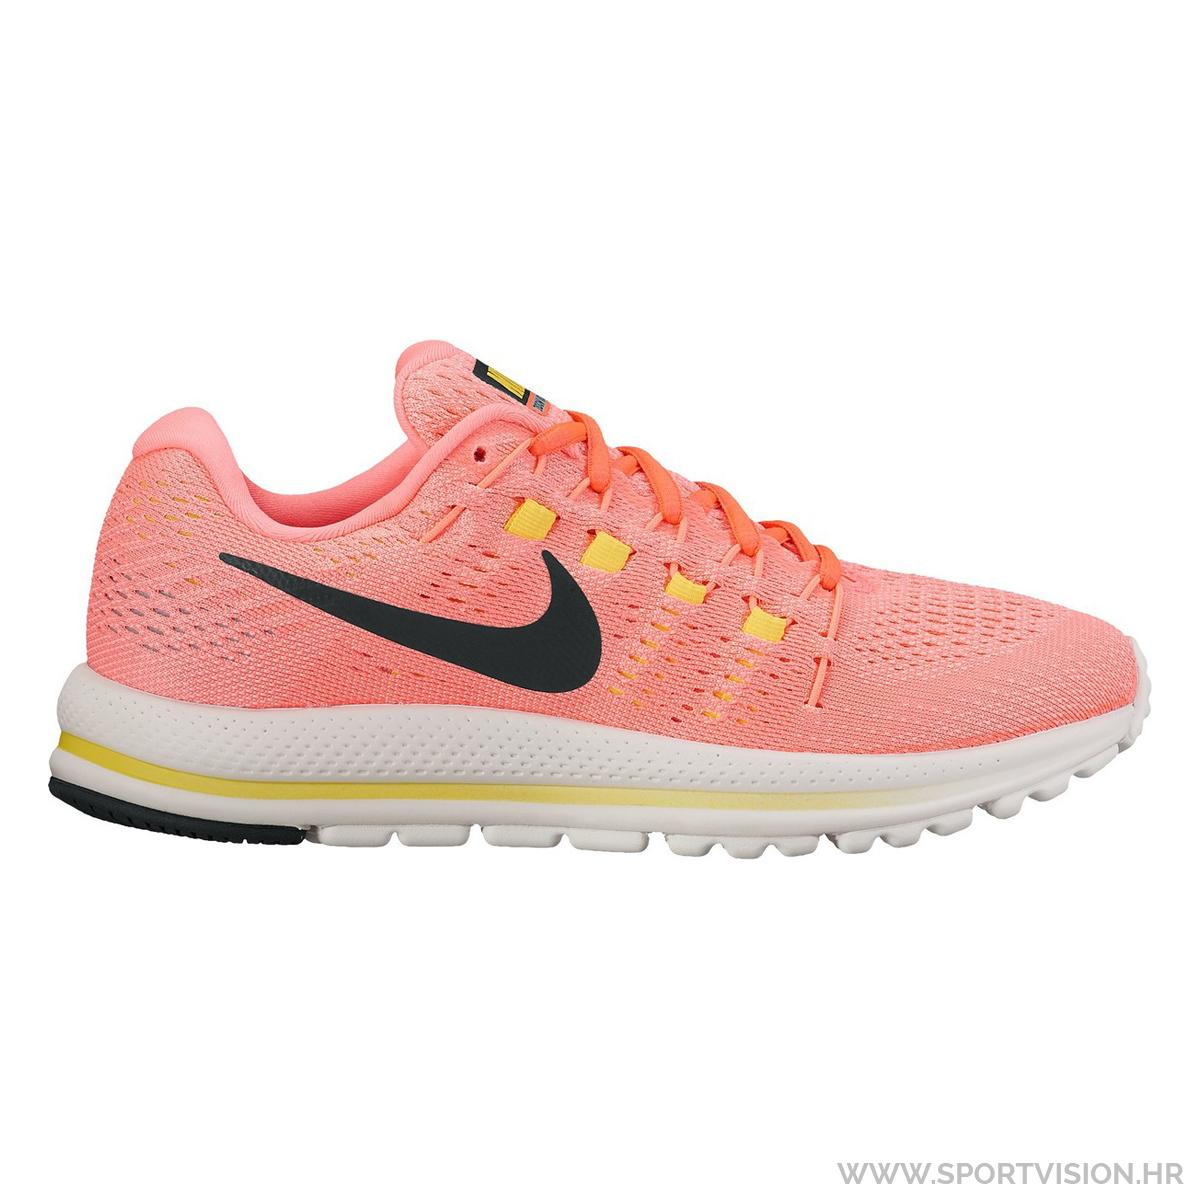 NIKE tenisice WMNS AIR ZOOM VOMERO 12